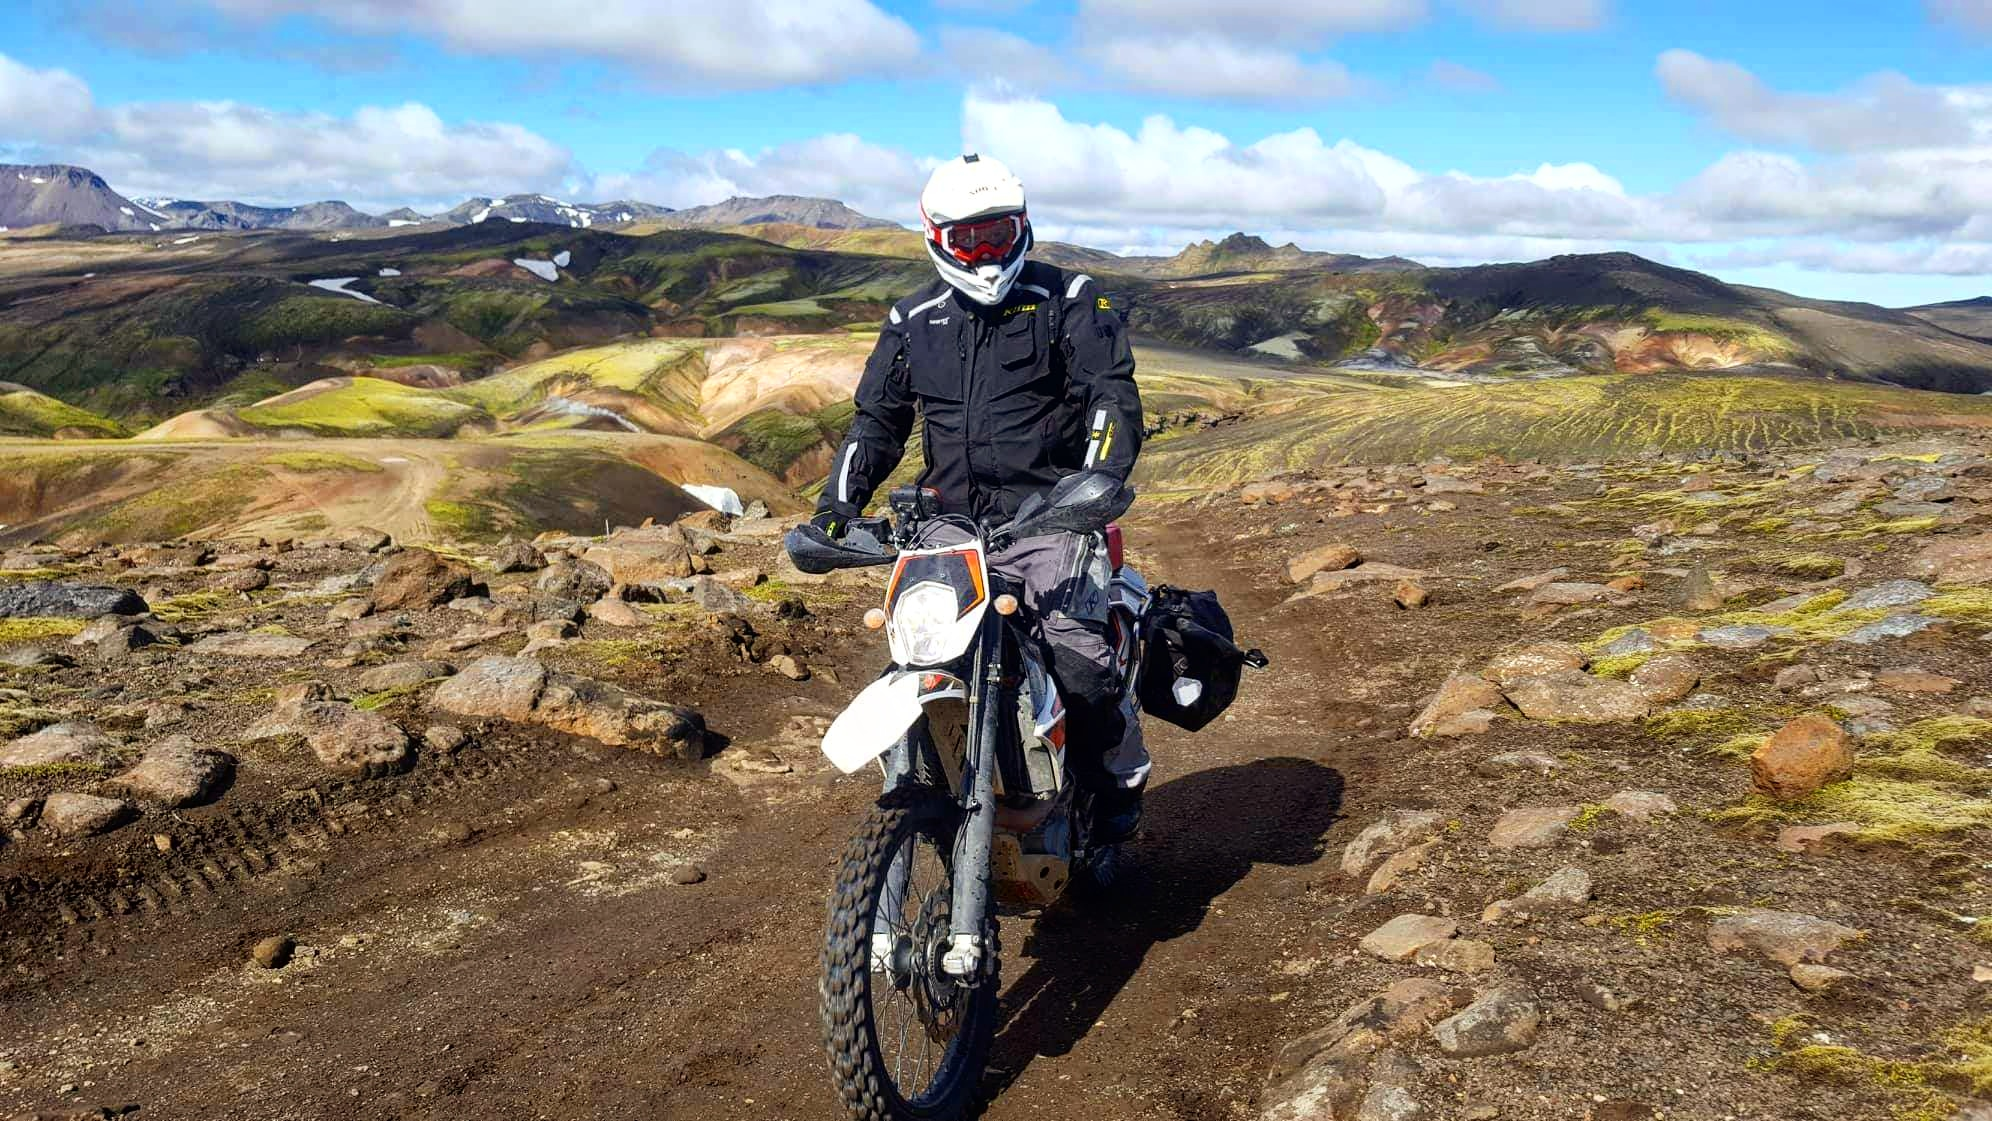 Riding on a sunny day on the dirt roads of the Icelandic highlands.